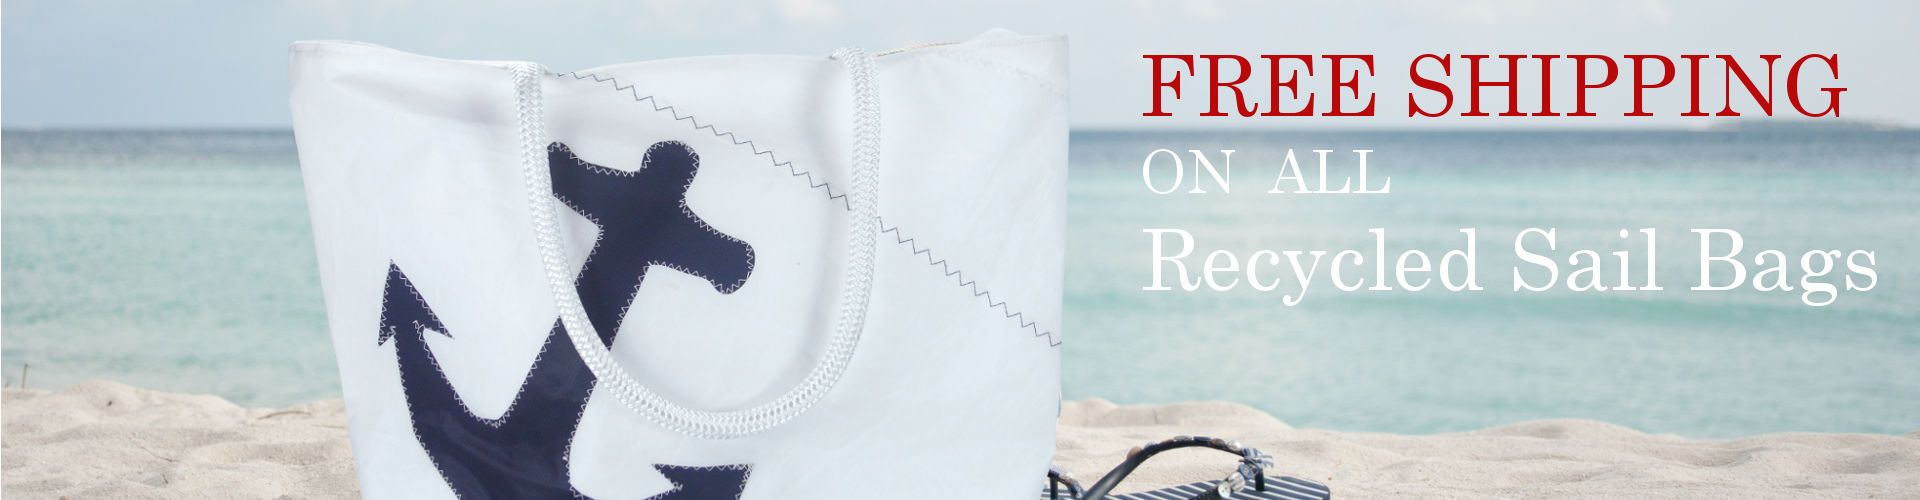 FREE Shipping on all Recycled Sail Bags - Handcrafted, Made in USA